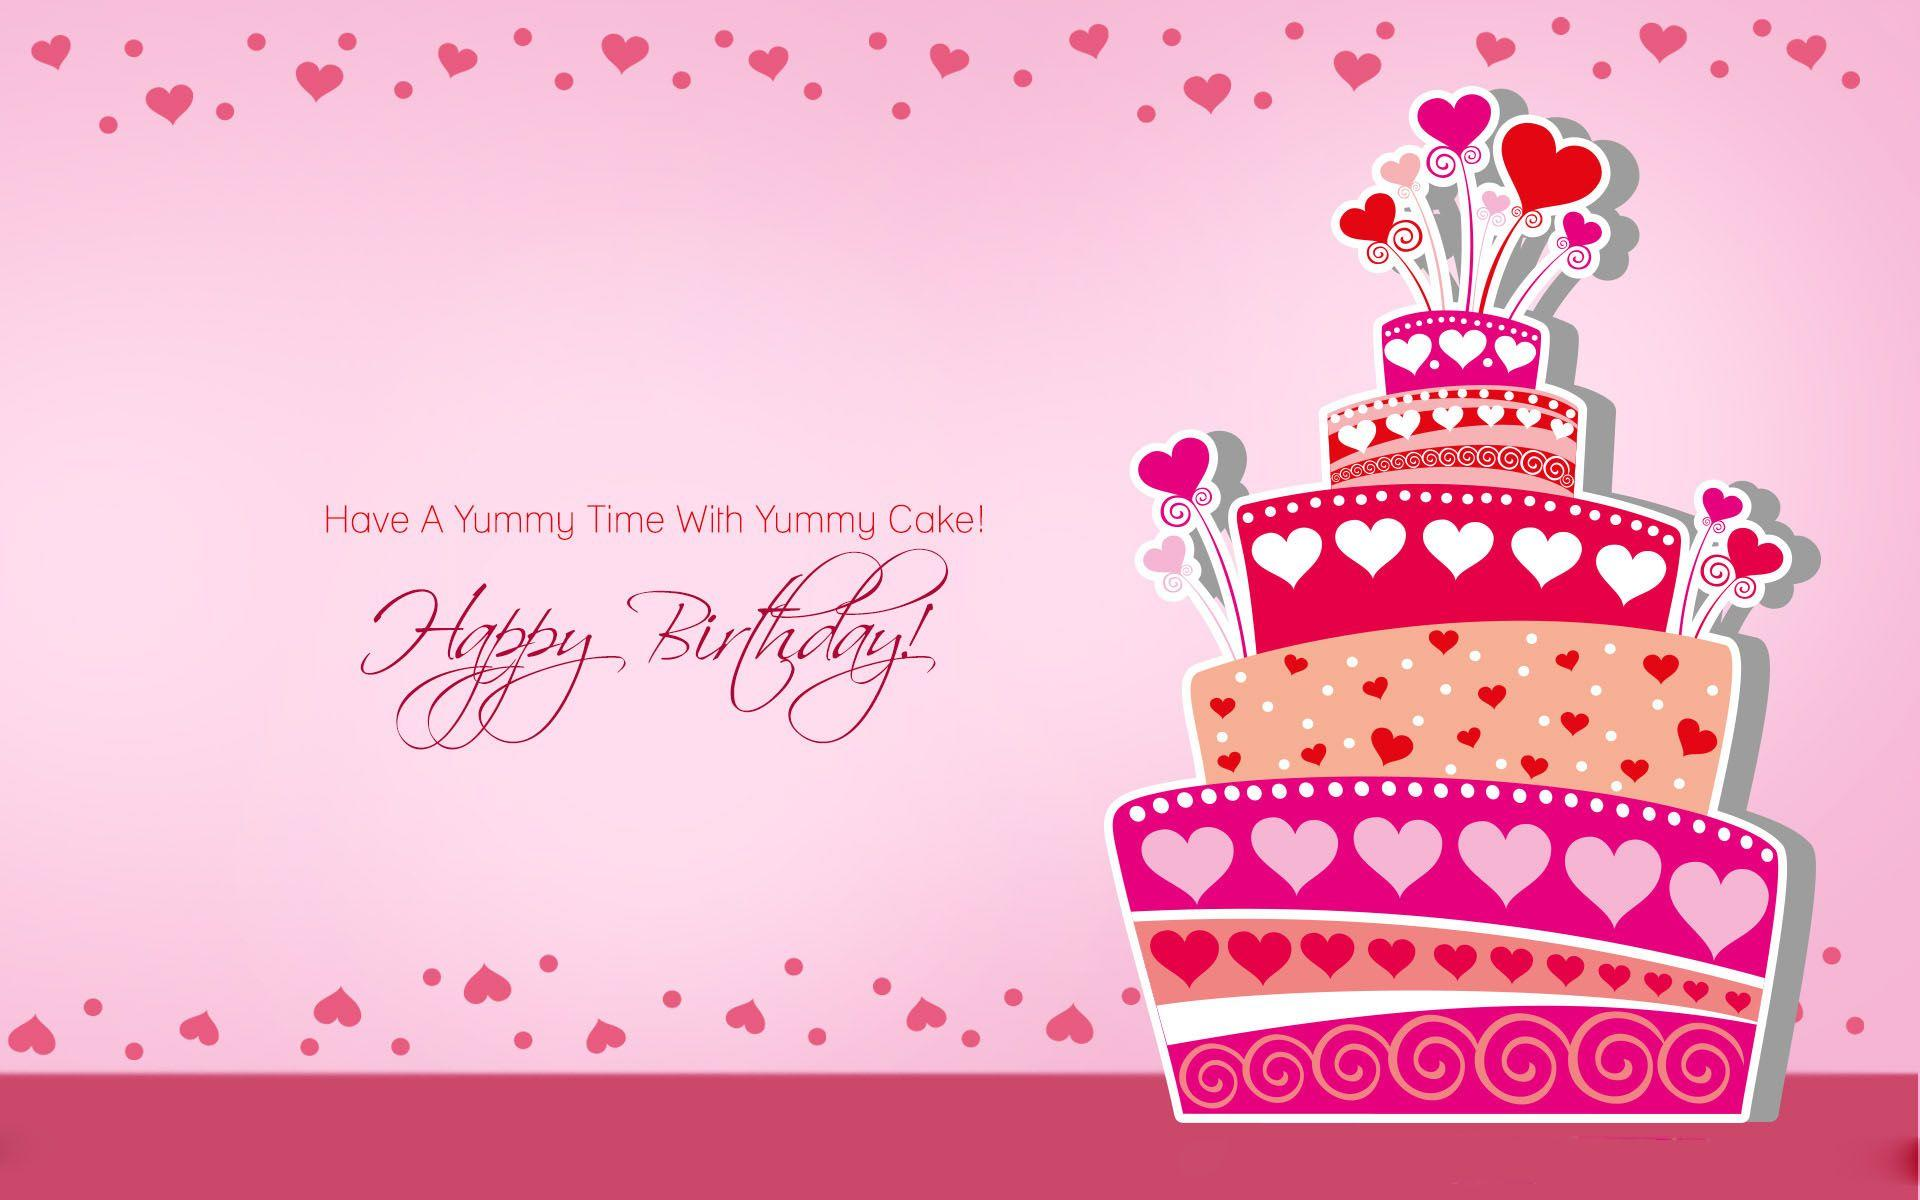 Free Wallpaper Birthday Love : Happy Birthday Wallpapers Image - Wallpaper cave